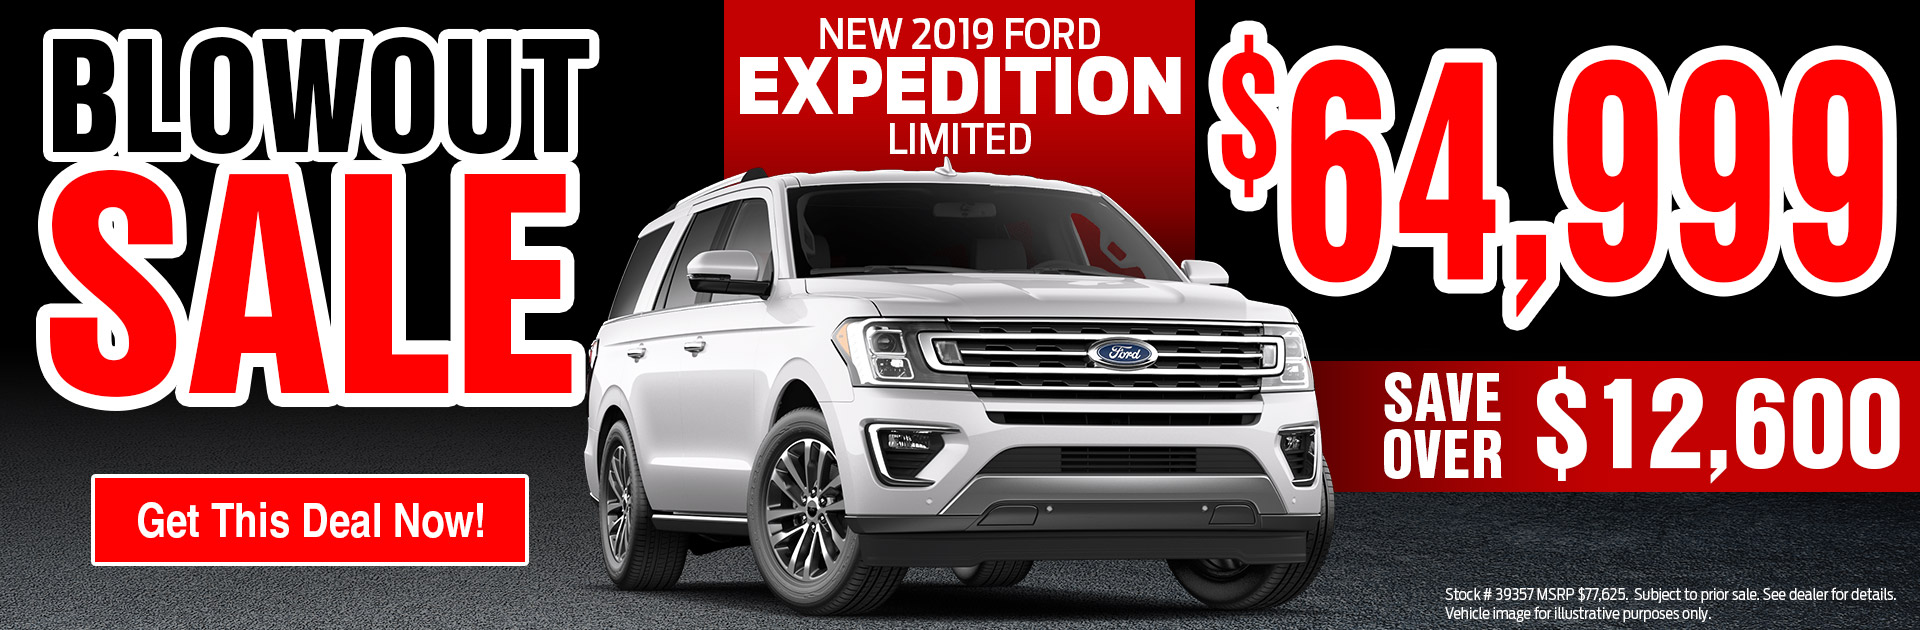 North East Ford Blowout Sale 1